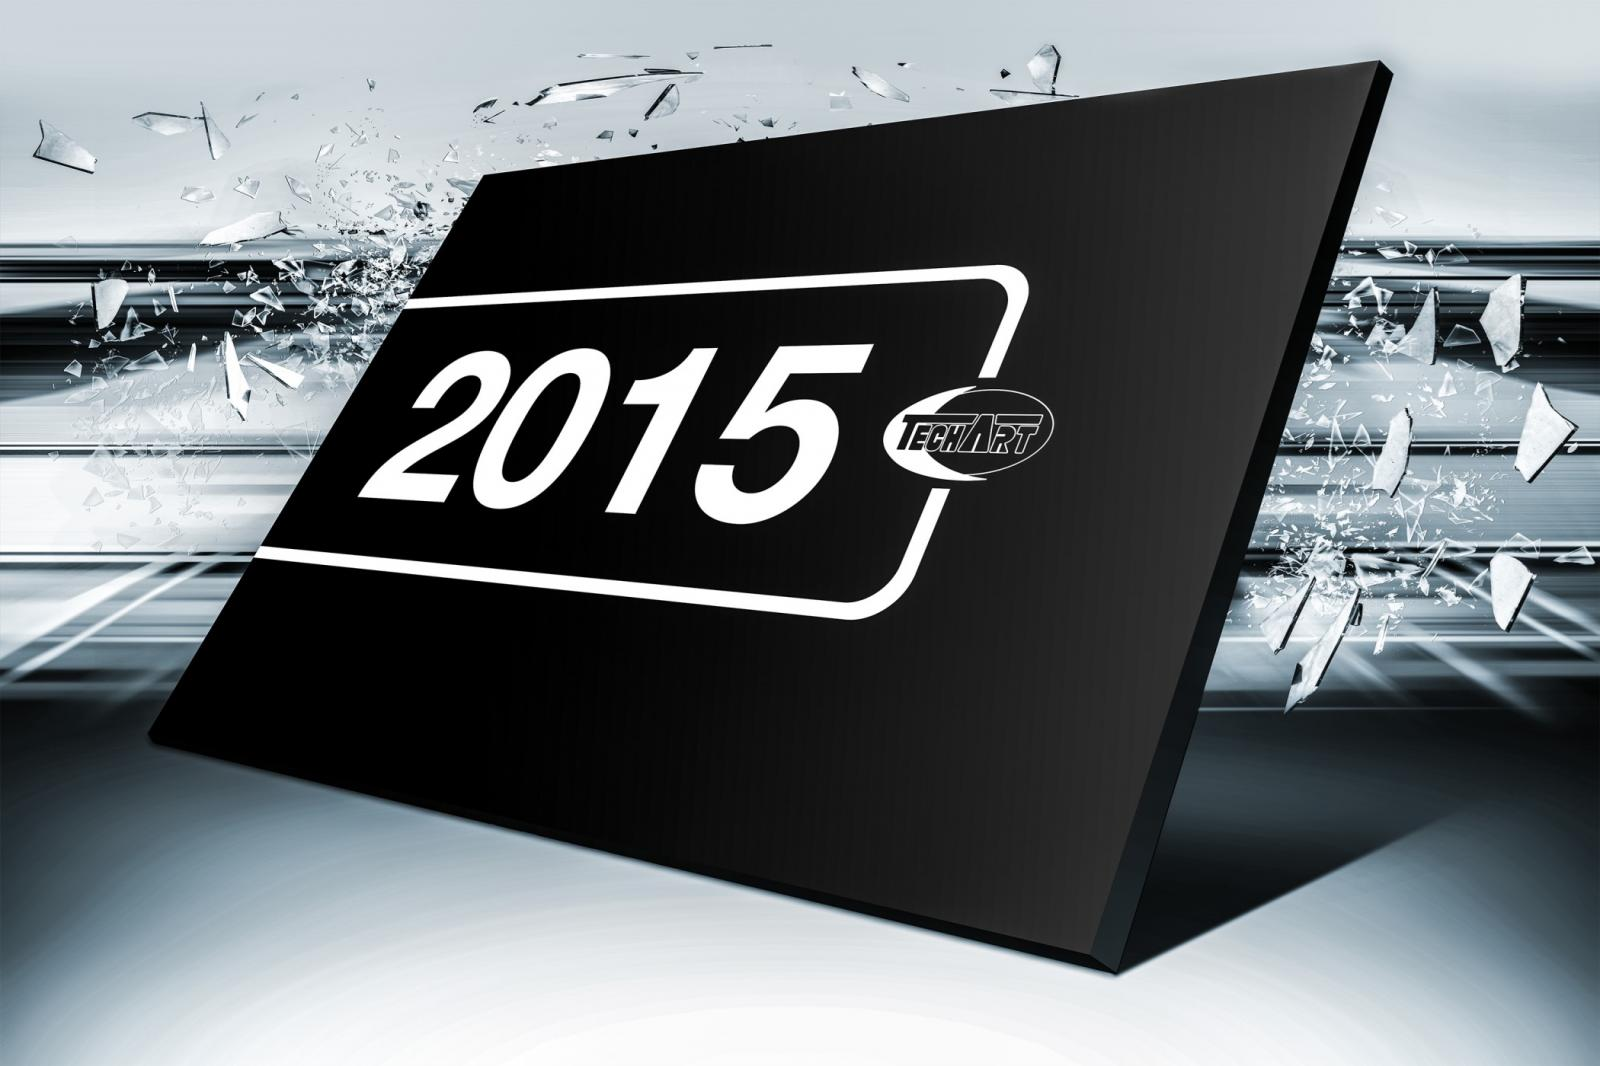 TECHART_Calendar_2015_packaging